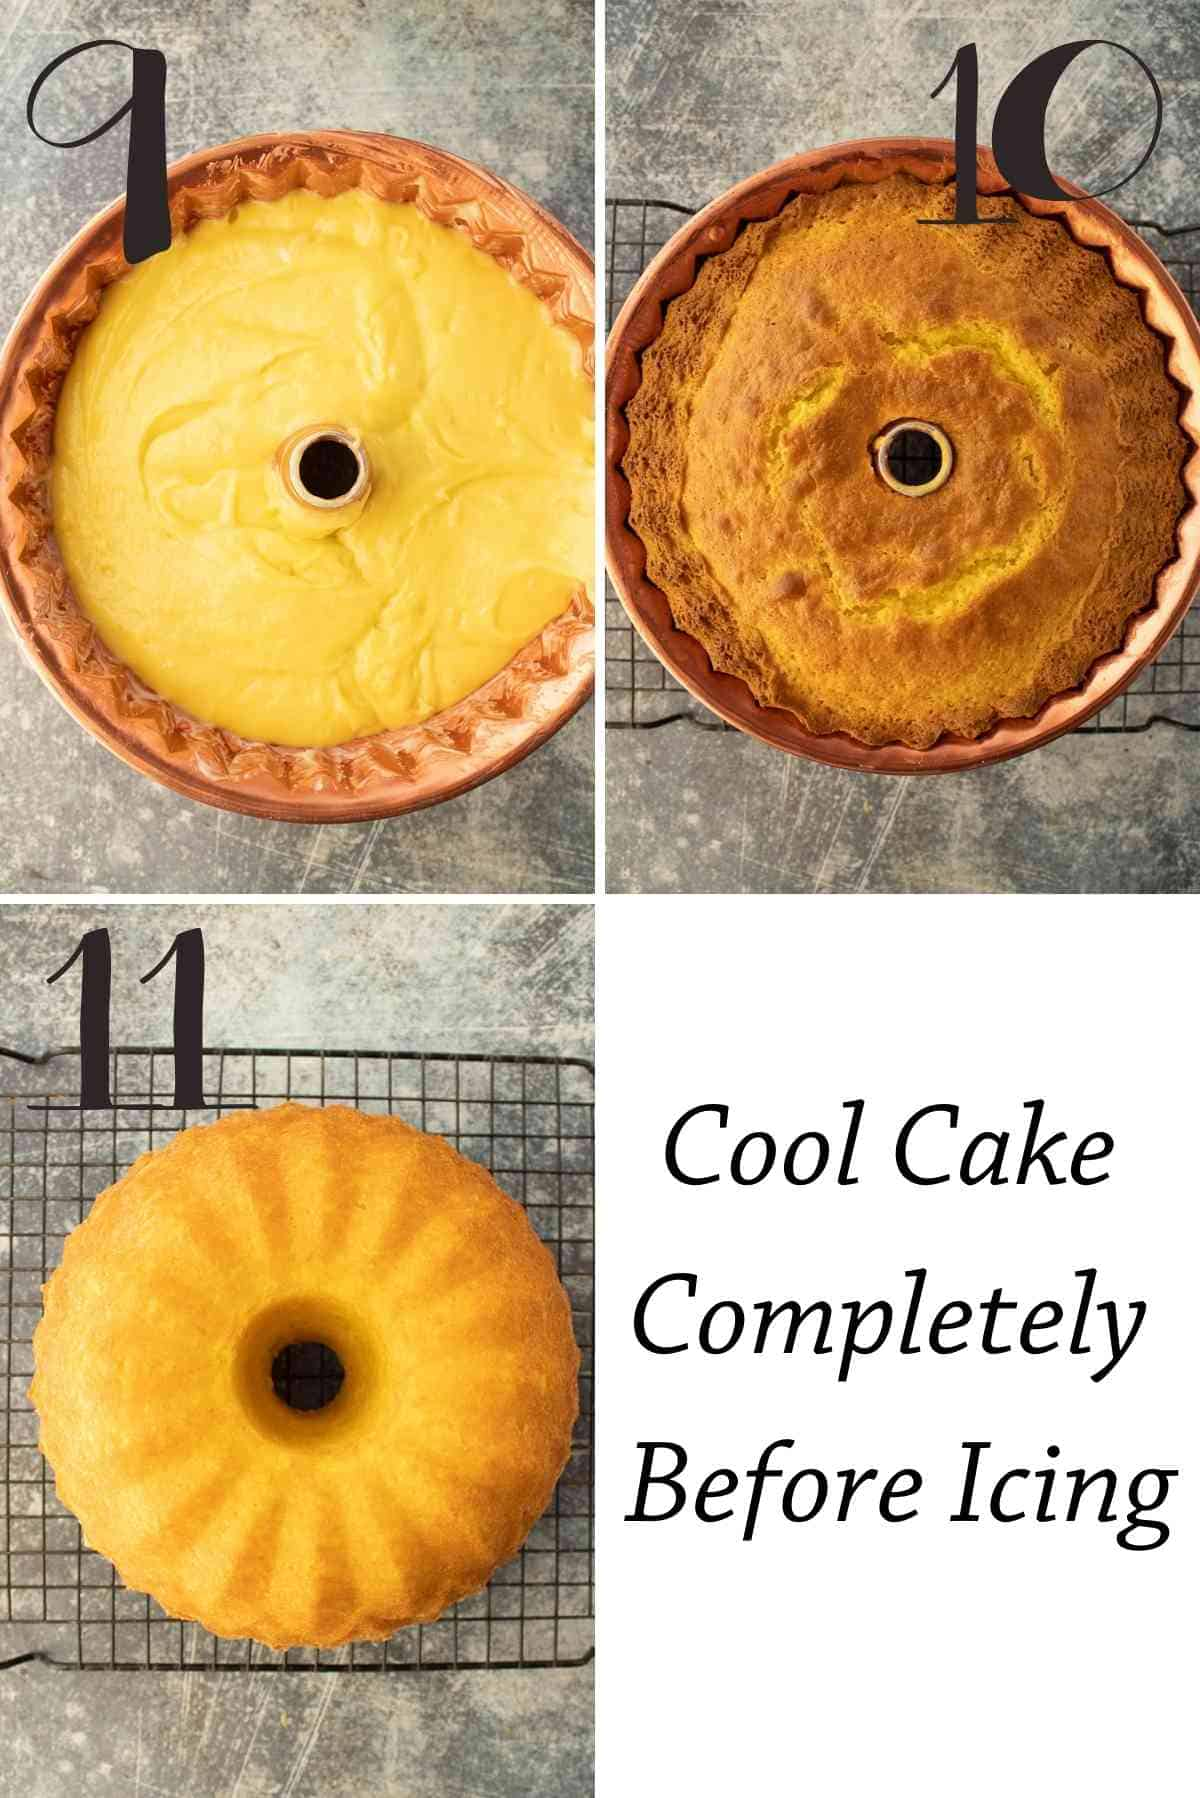 Unbaked batter in a bundt pan, then baked, then turned out to cool.